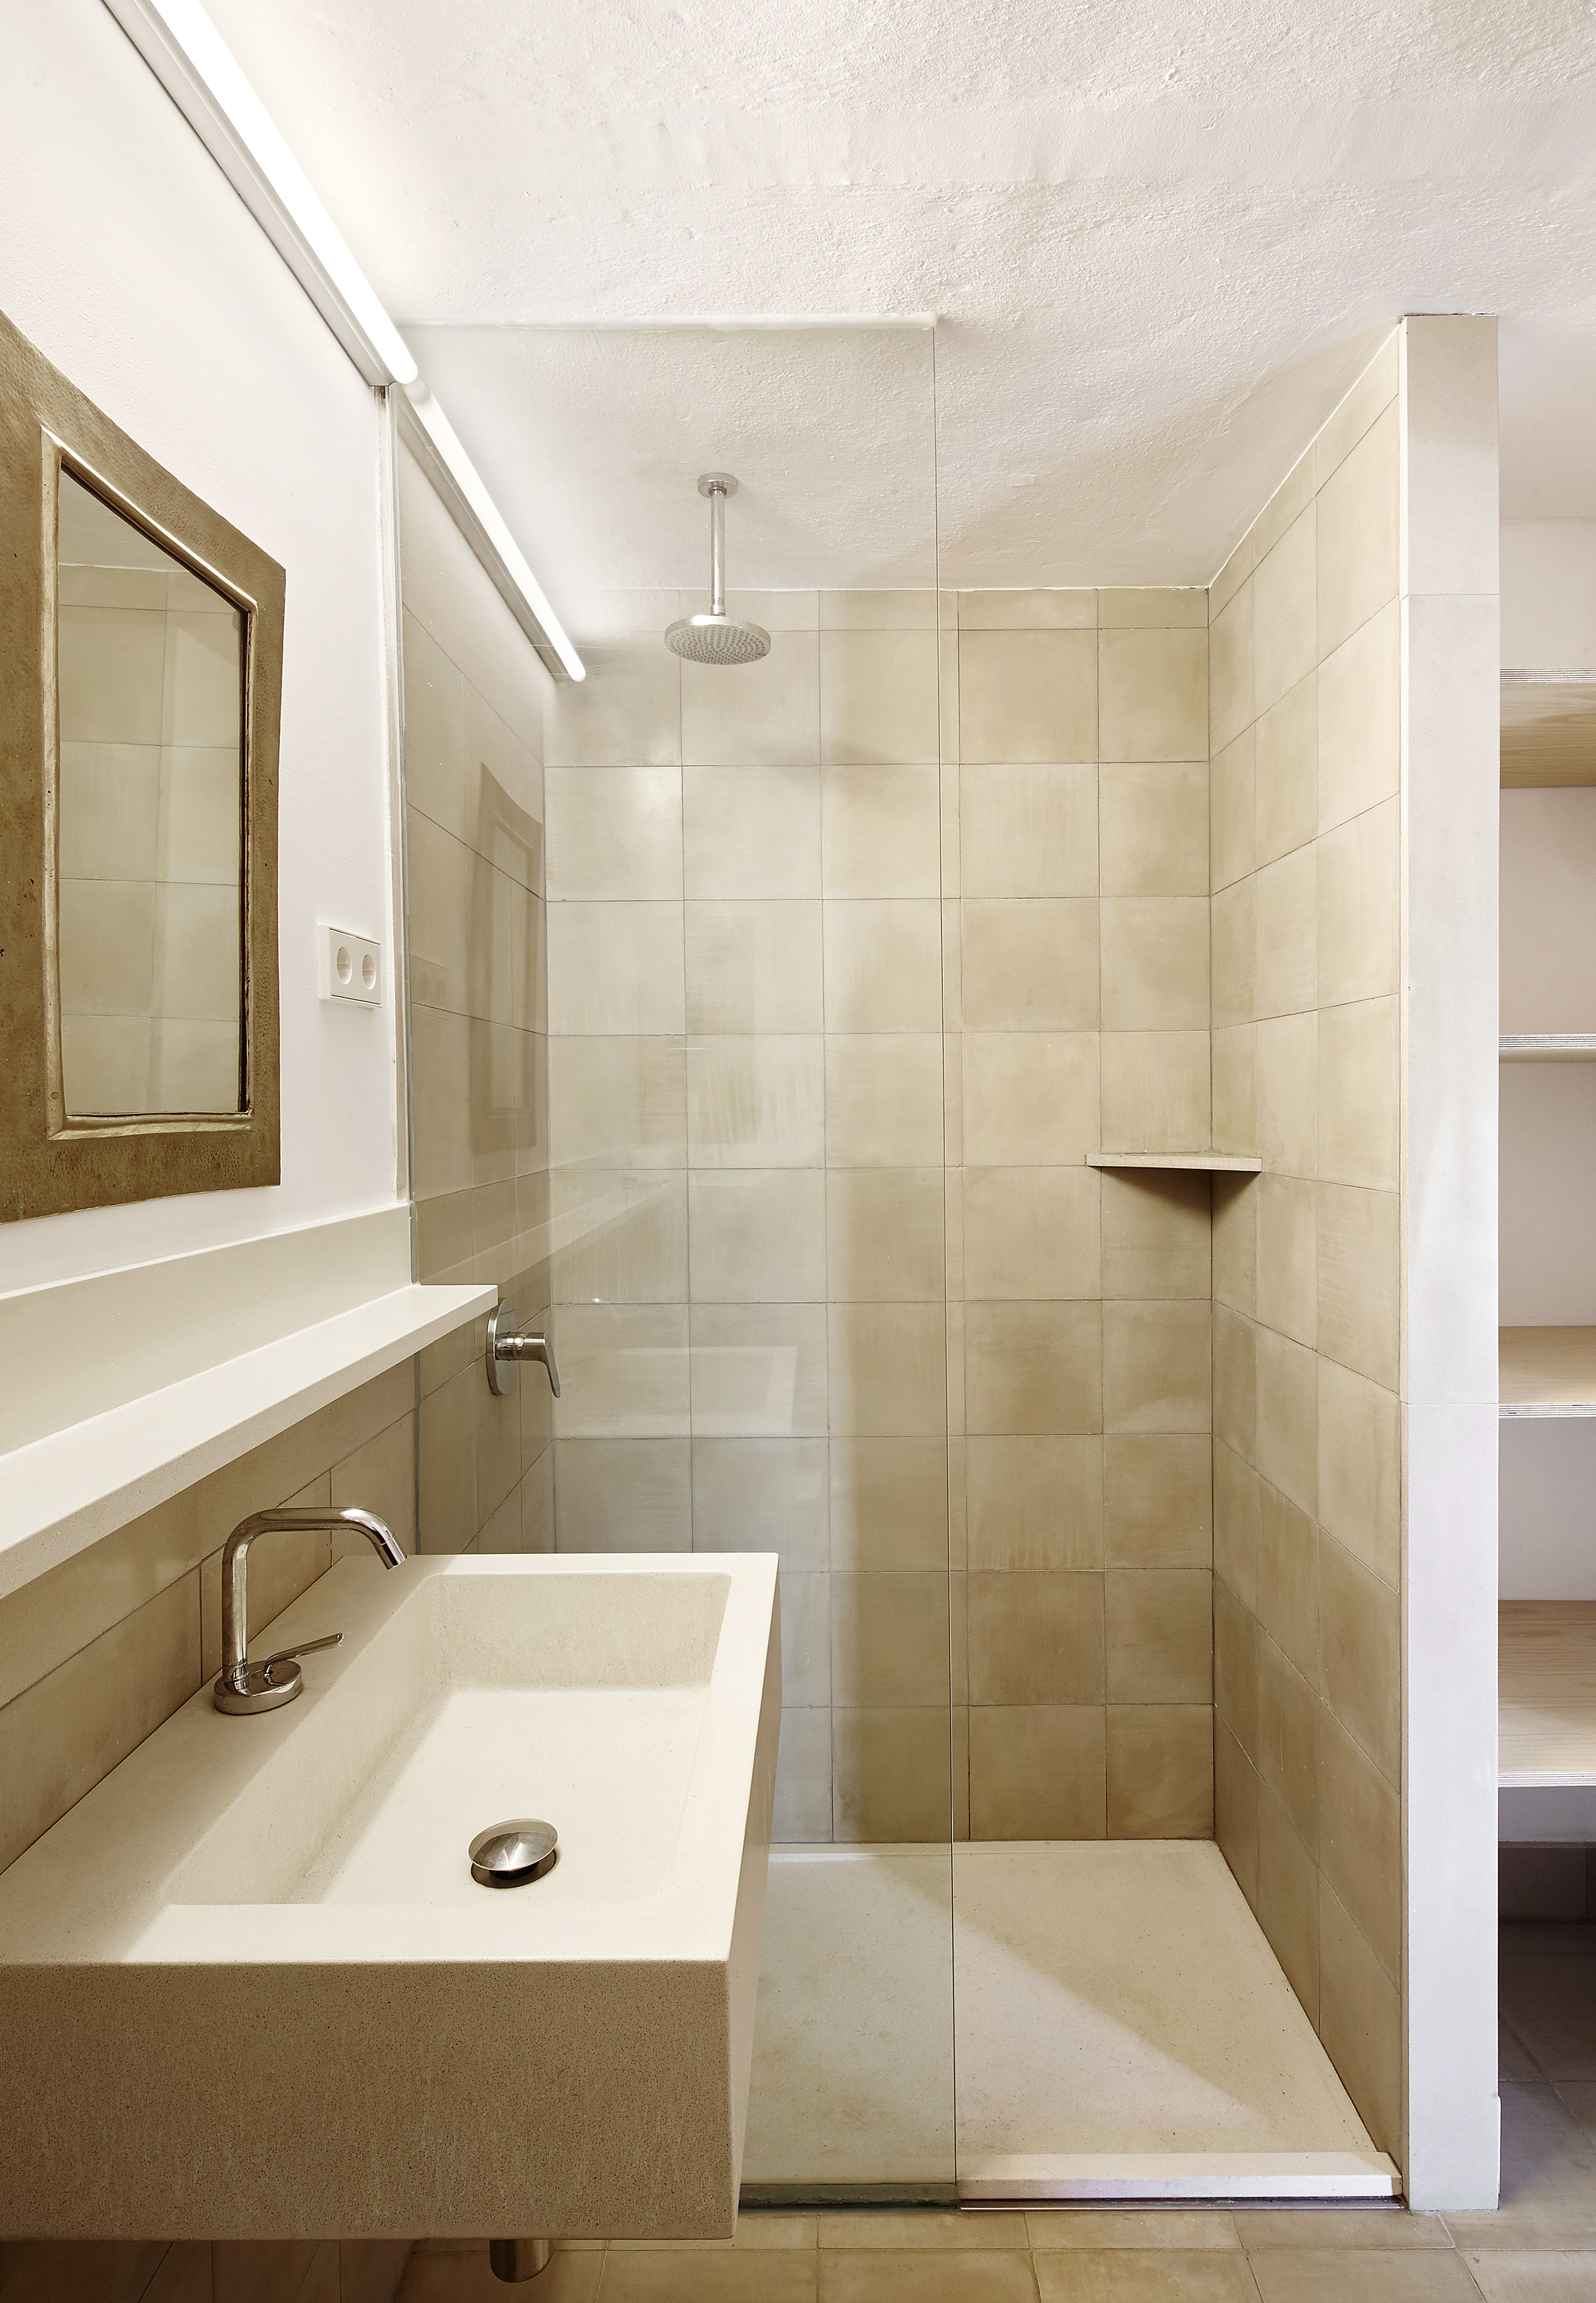 Pin By Huguet Mallorca On Bathrooms Cement Tiles and Pices